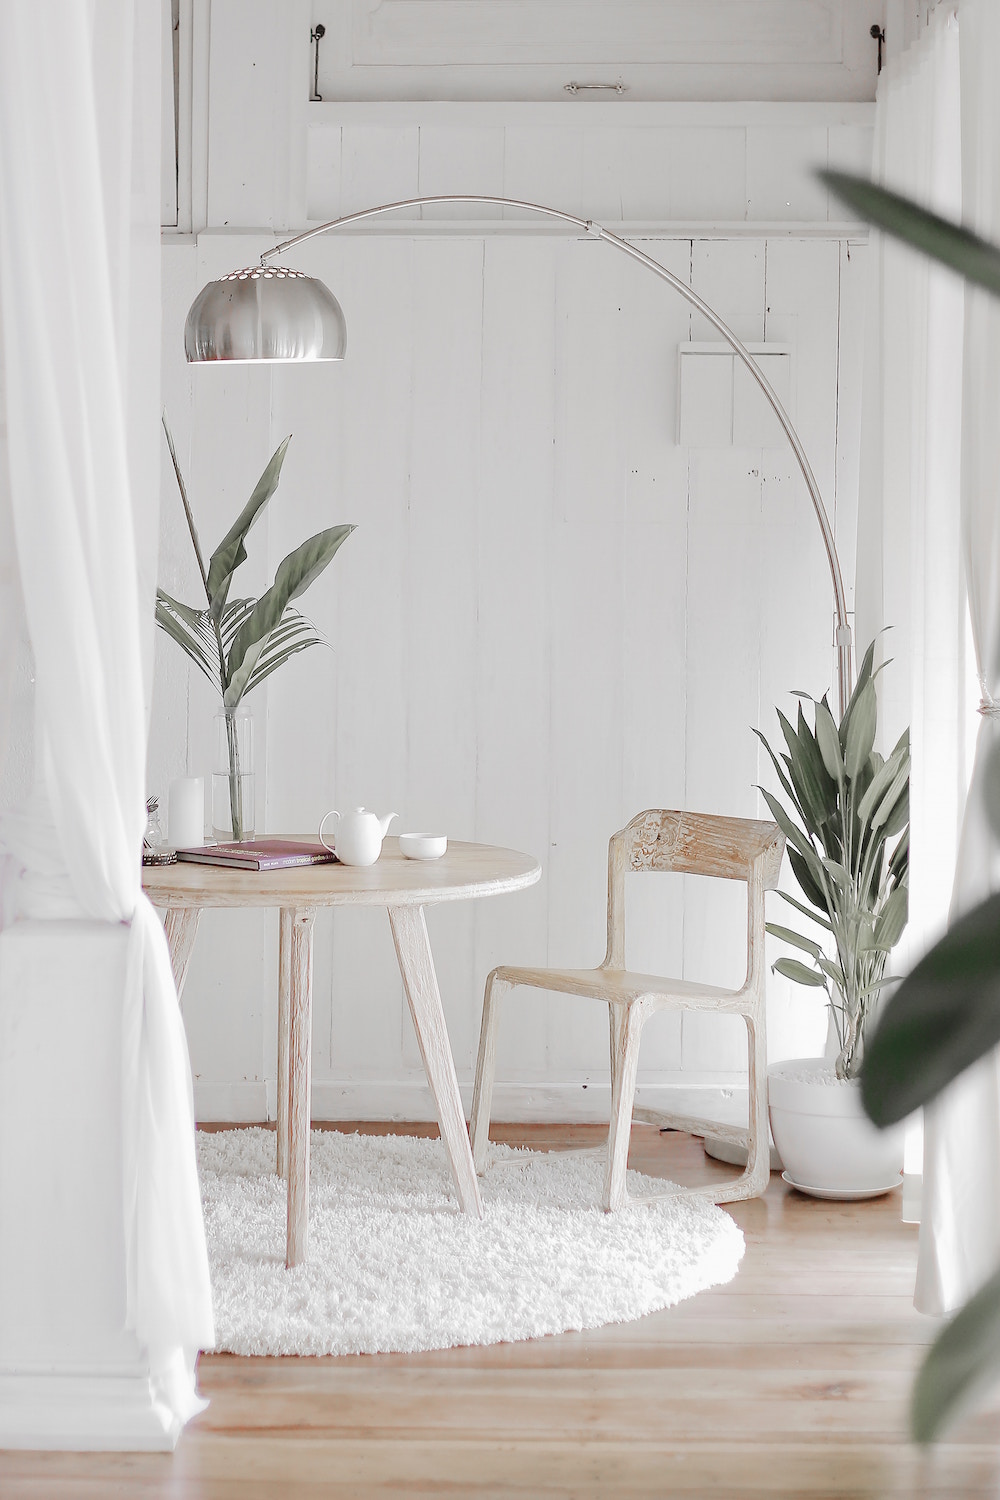 Could Feng Shui Help Give You Interior Decorating Inspiration